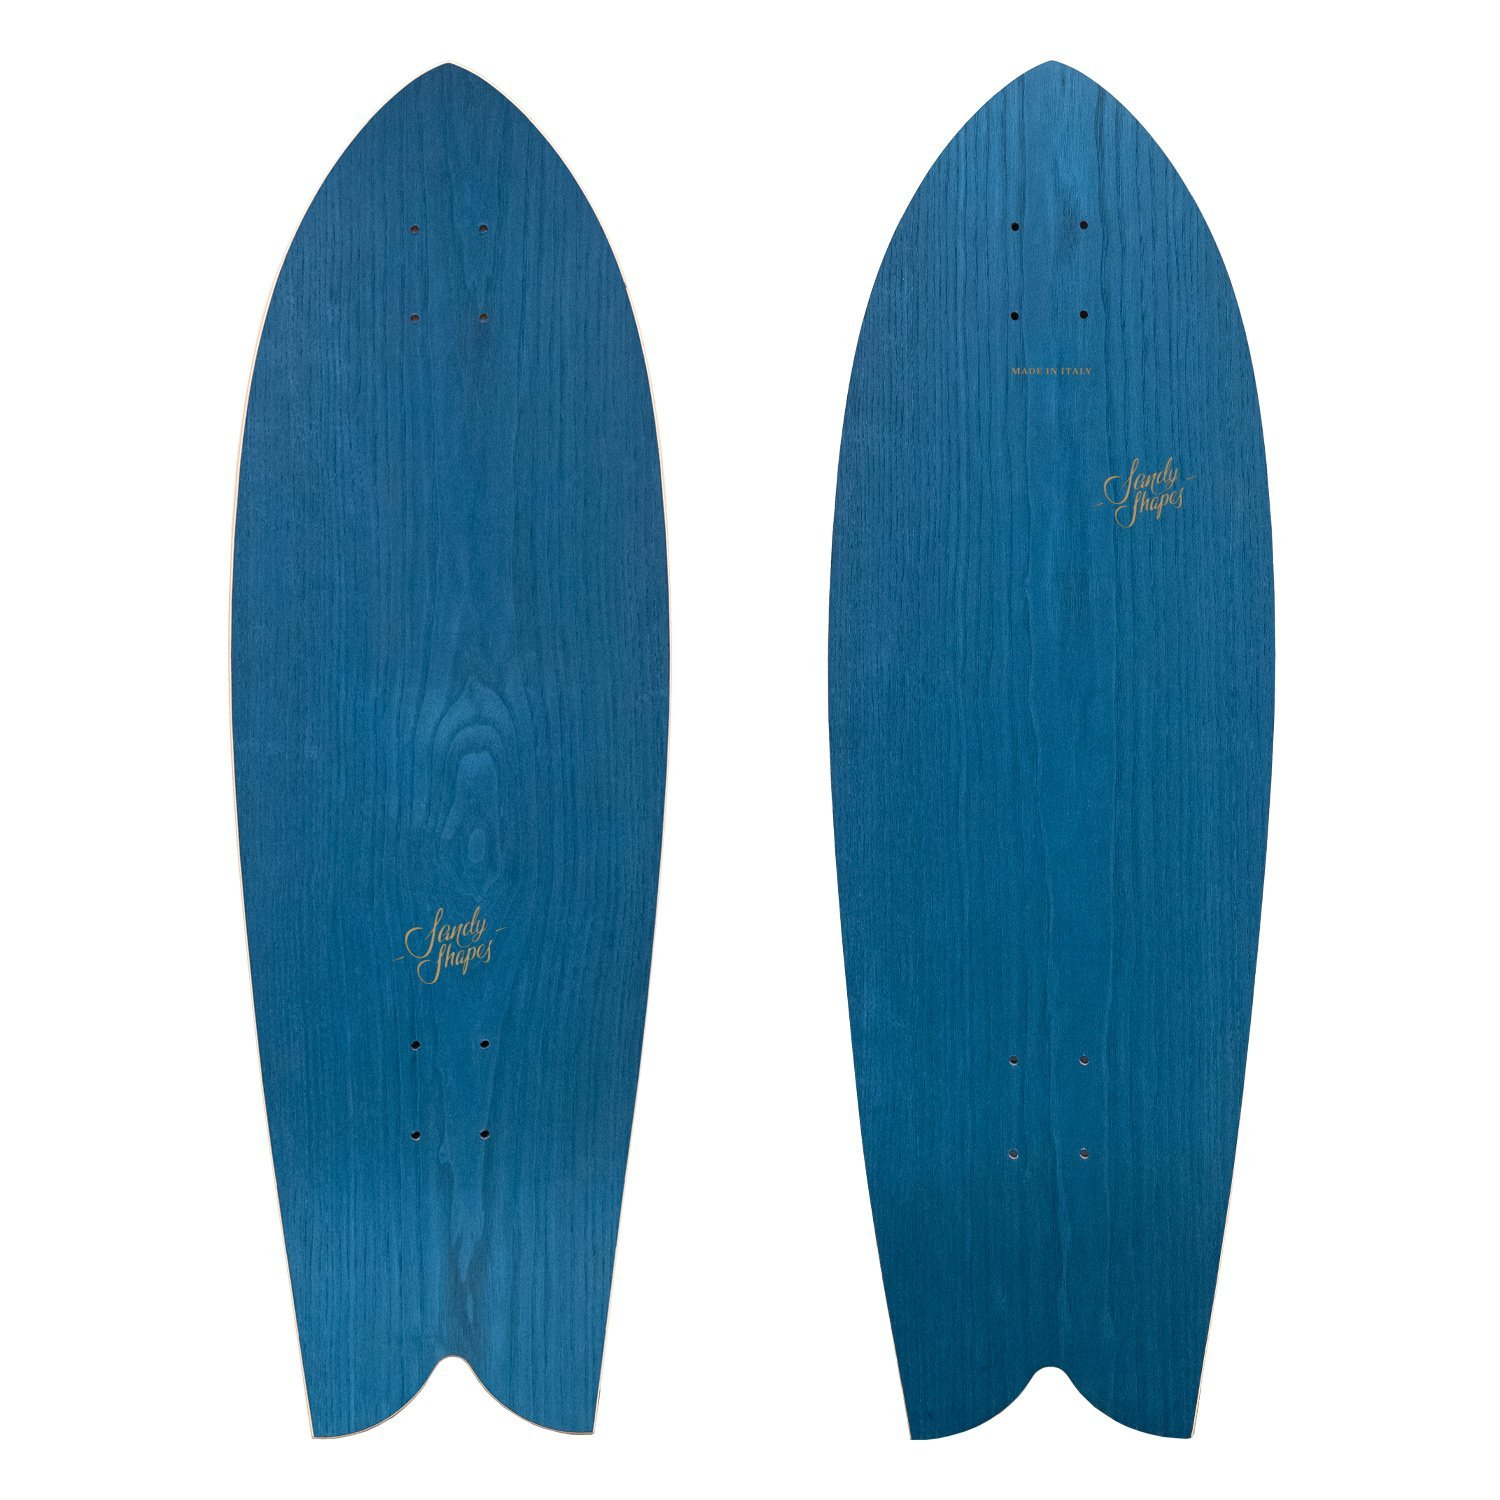 Tropicale: sustainable fish tail surfskate in blue ash wood